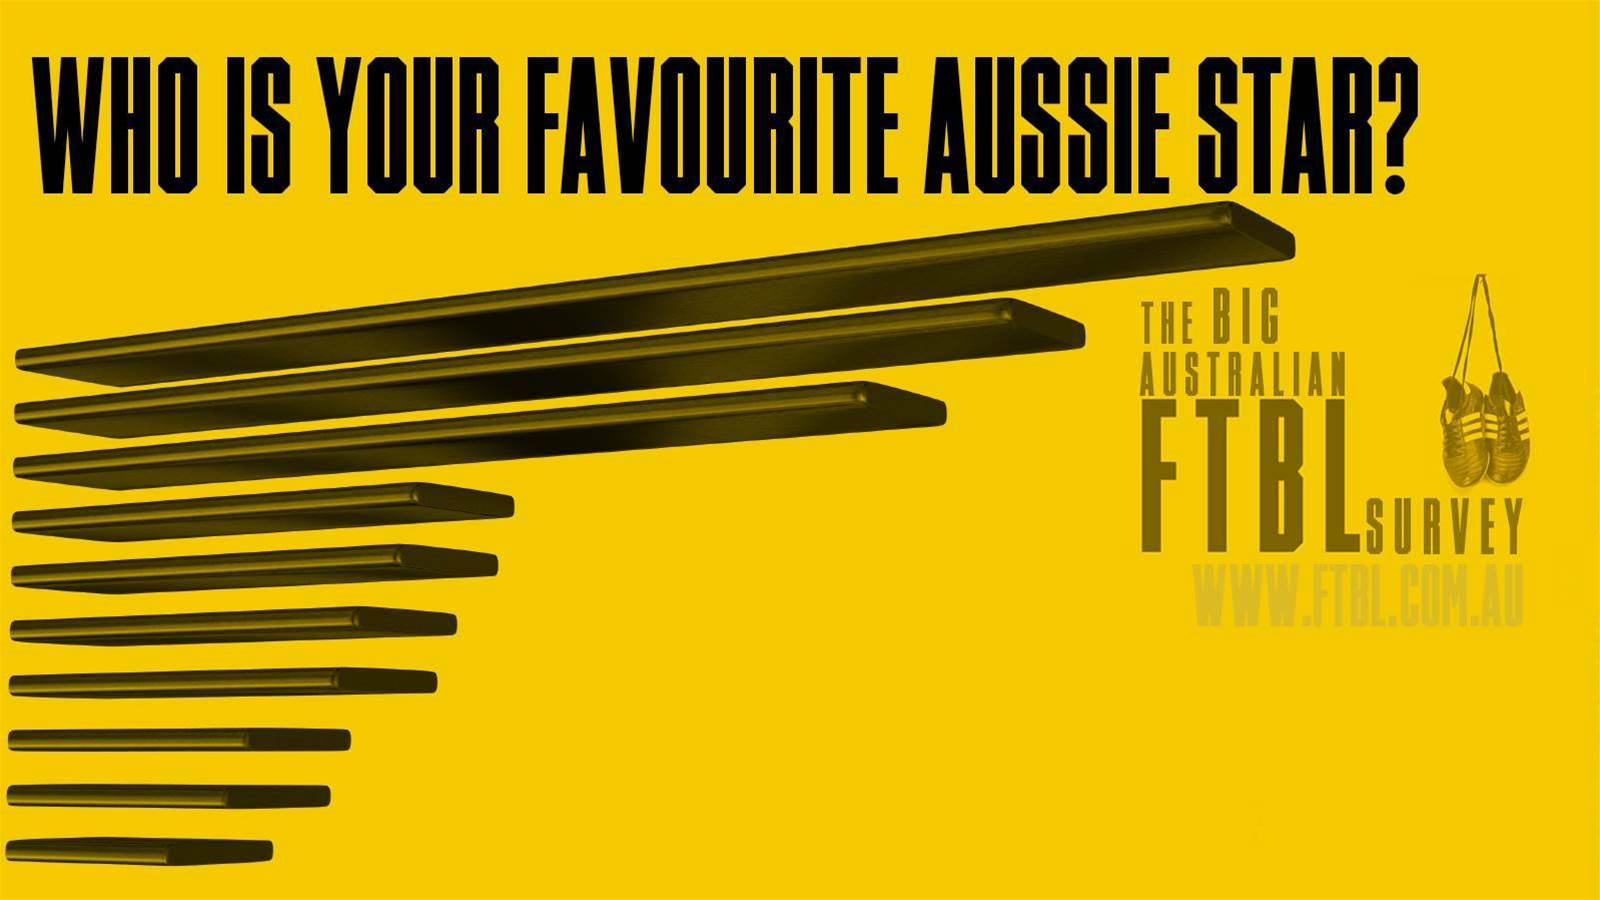 Revealed! Fans name their favourite Aussie star